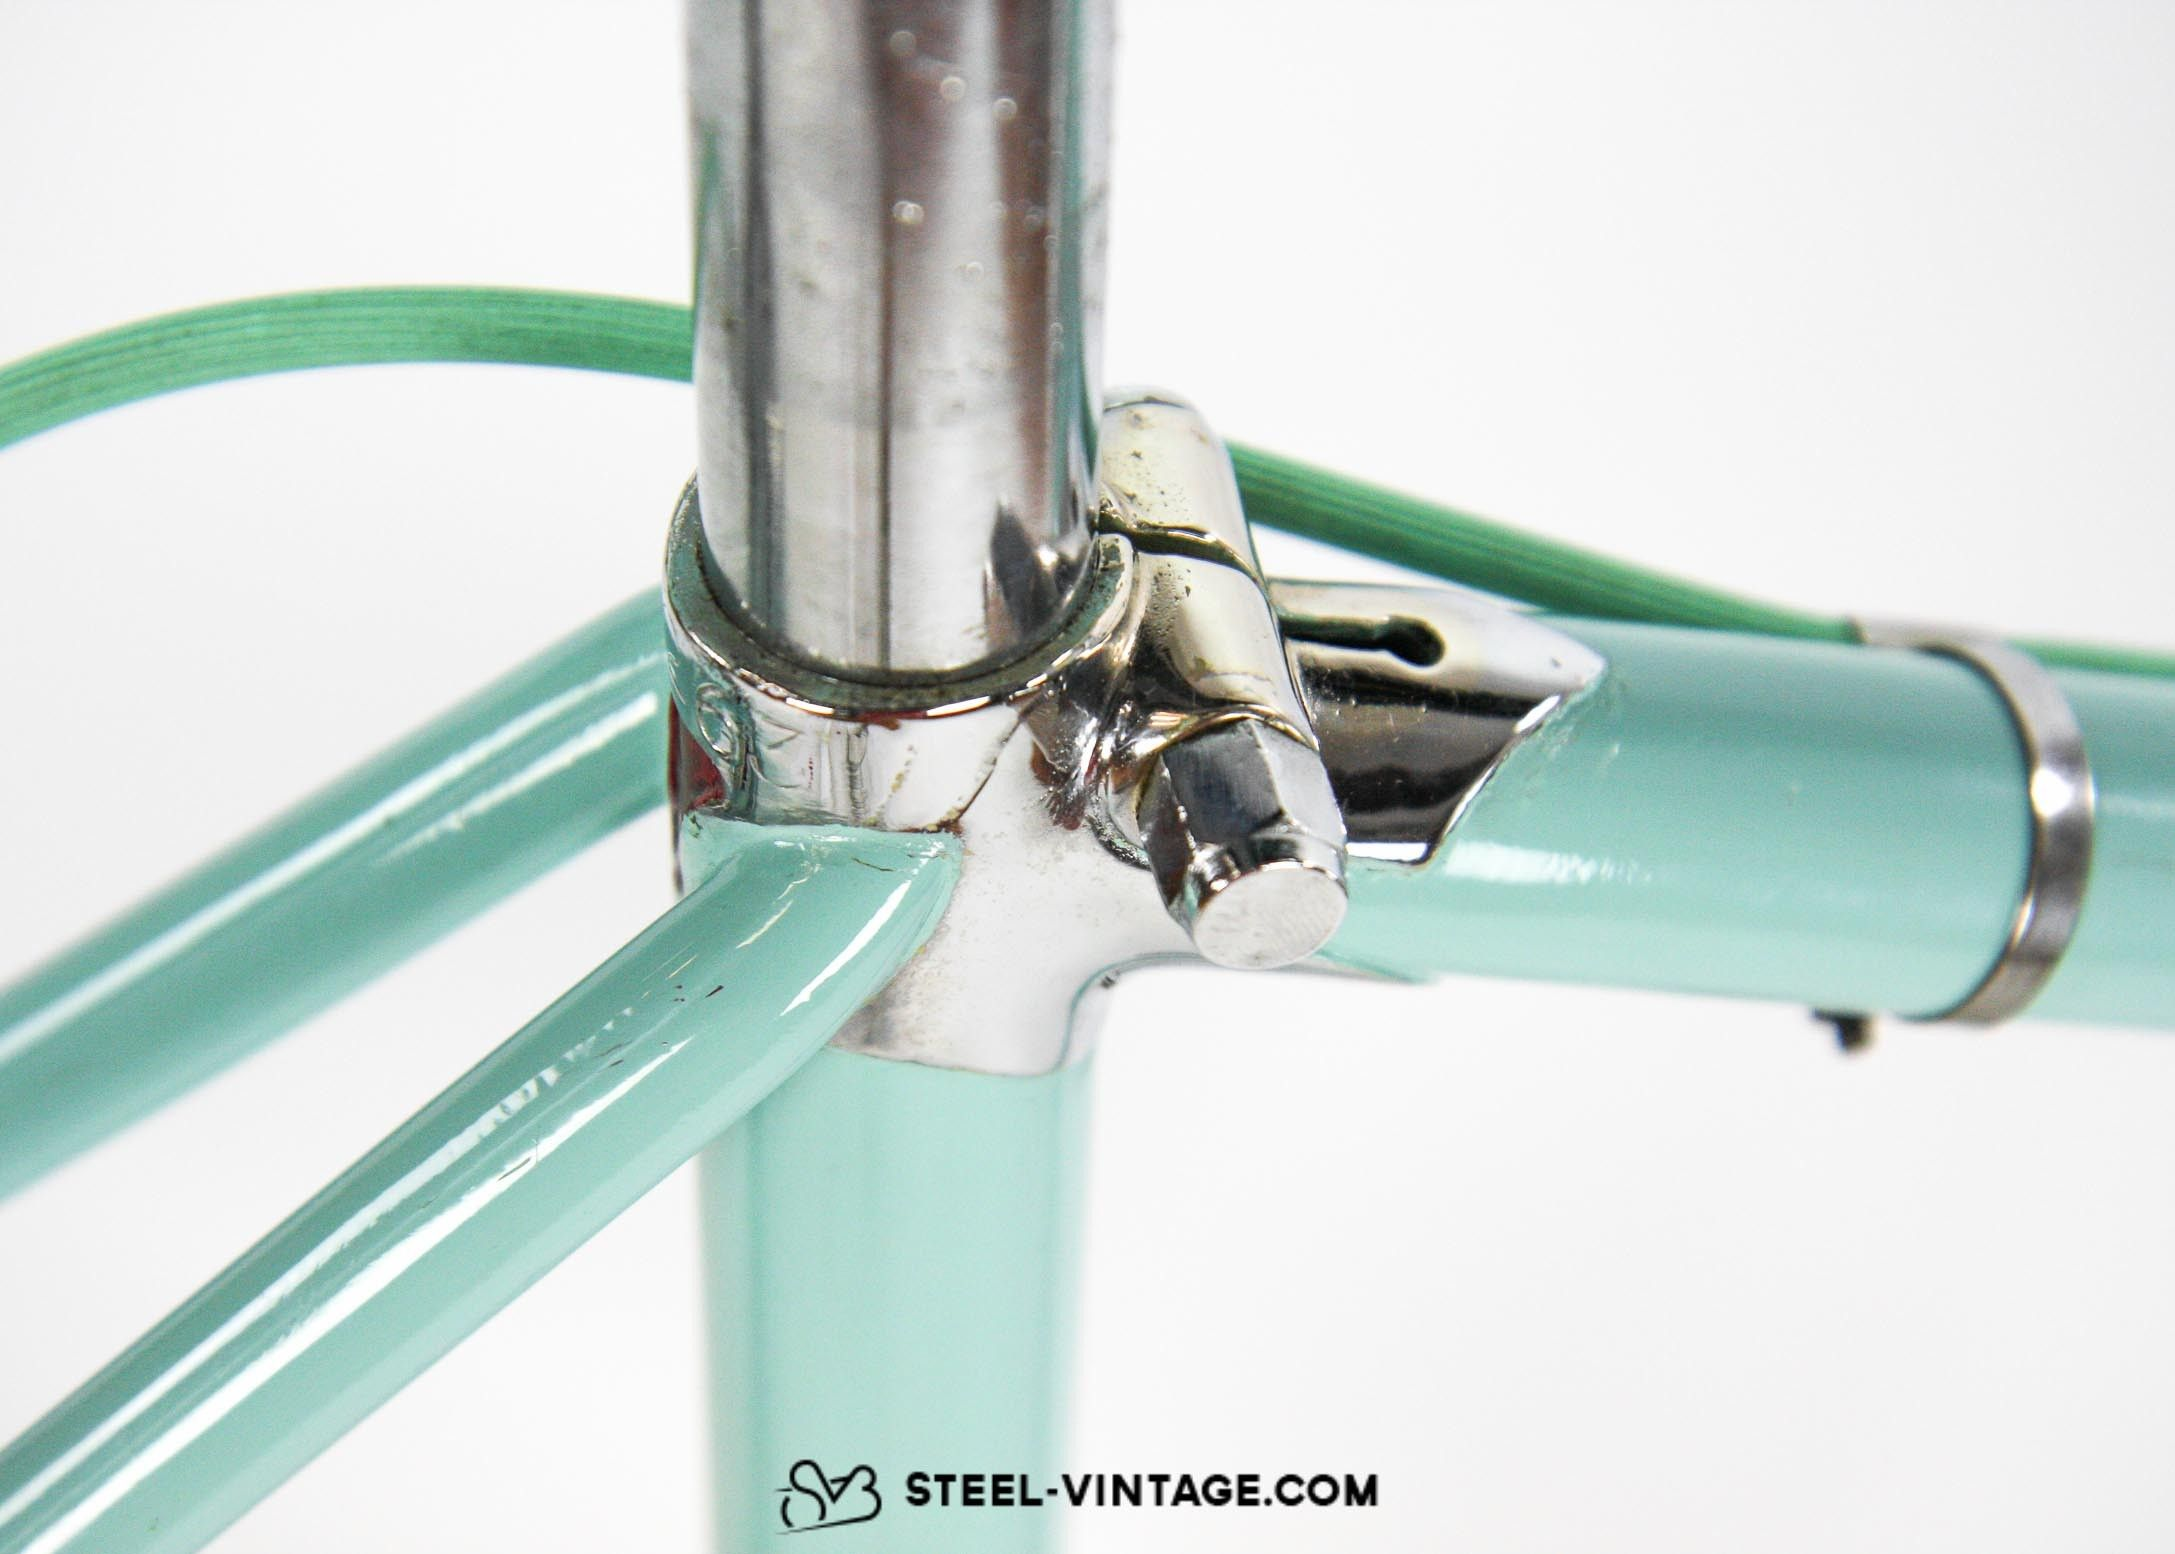 Steel Vintage Bikes Bianchi Folgore 1940s Classic Collectible Bicycle Bicicletta